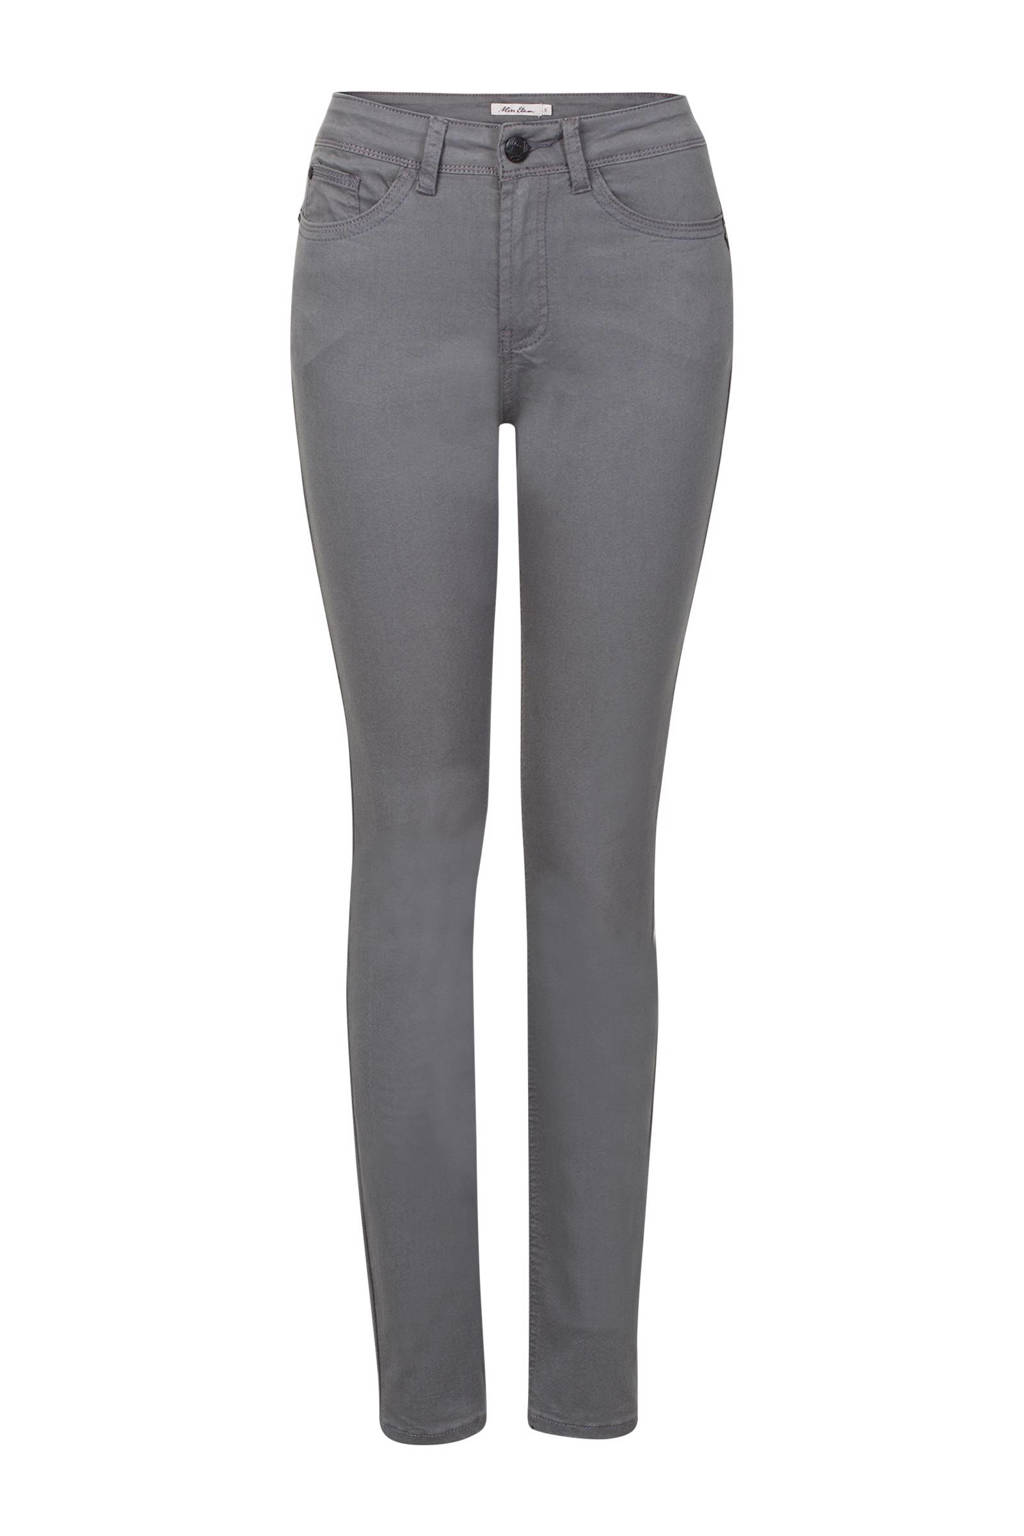 Miss Etam Lang push-up slim fit broek 36 inch, Grijs